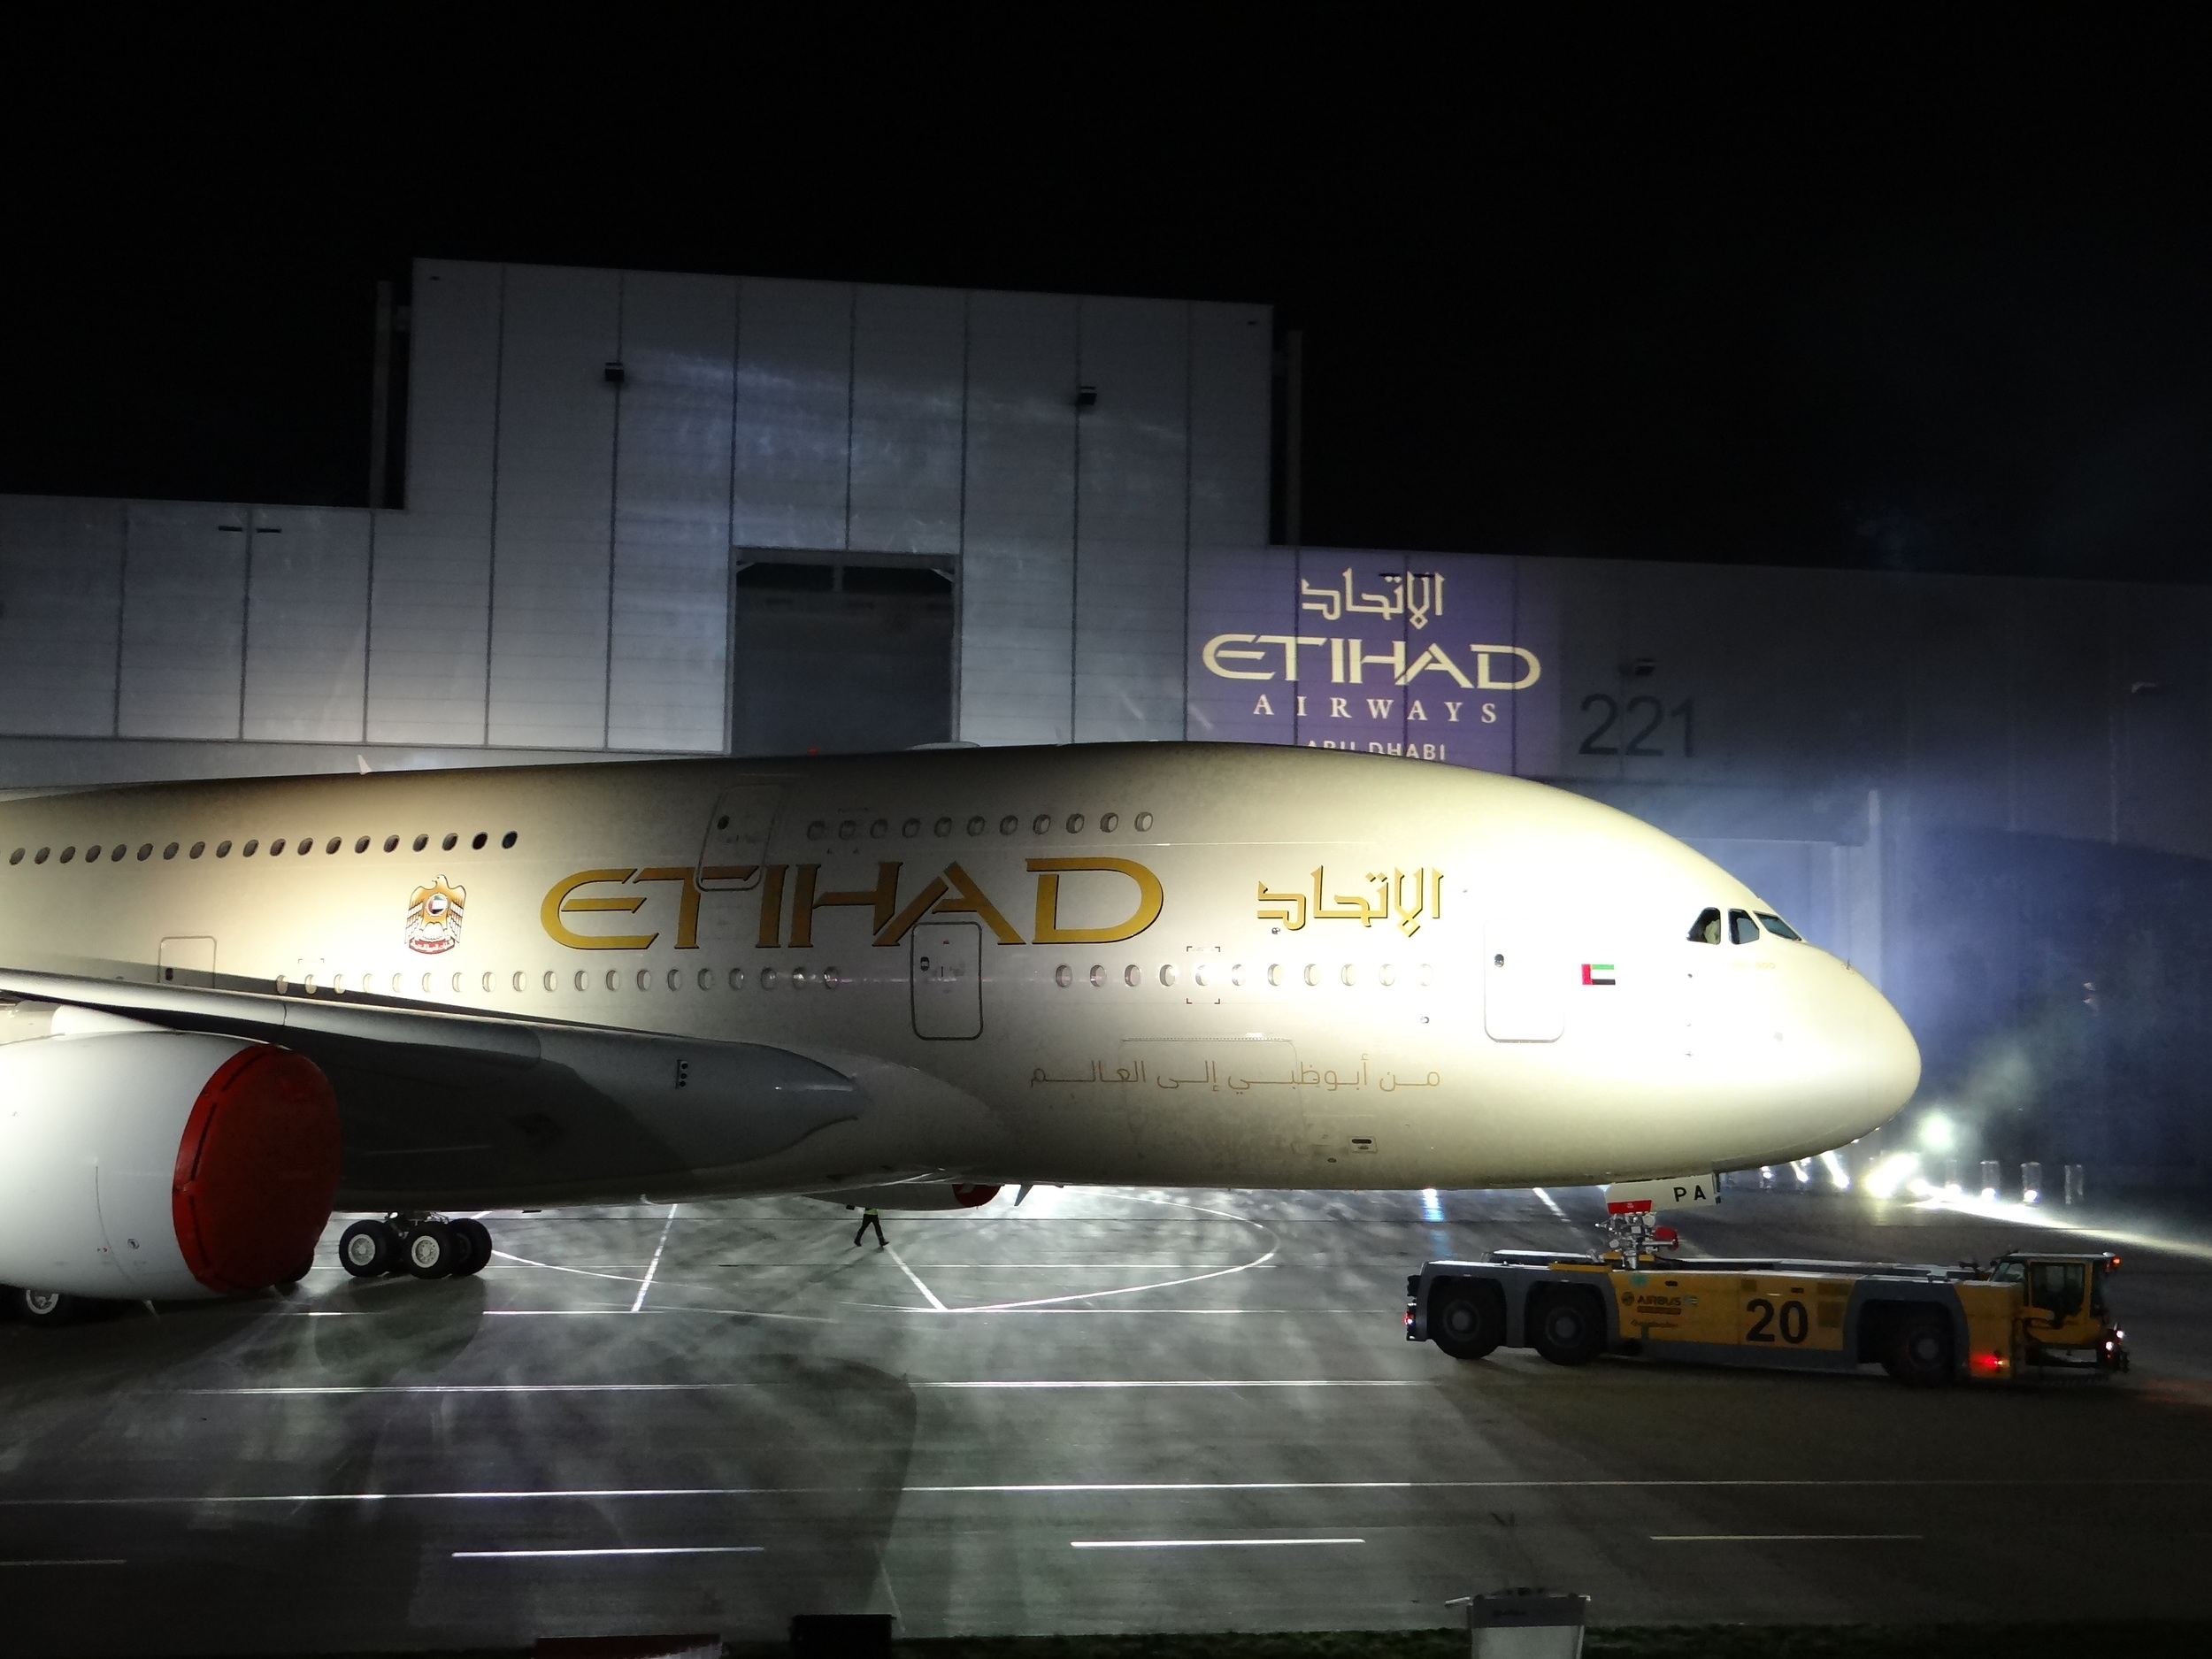 Now a lateral view, as Etihad's A380 is turning around in front of the audience